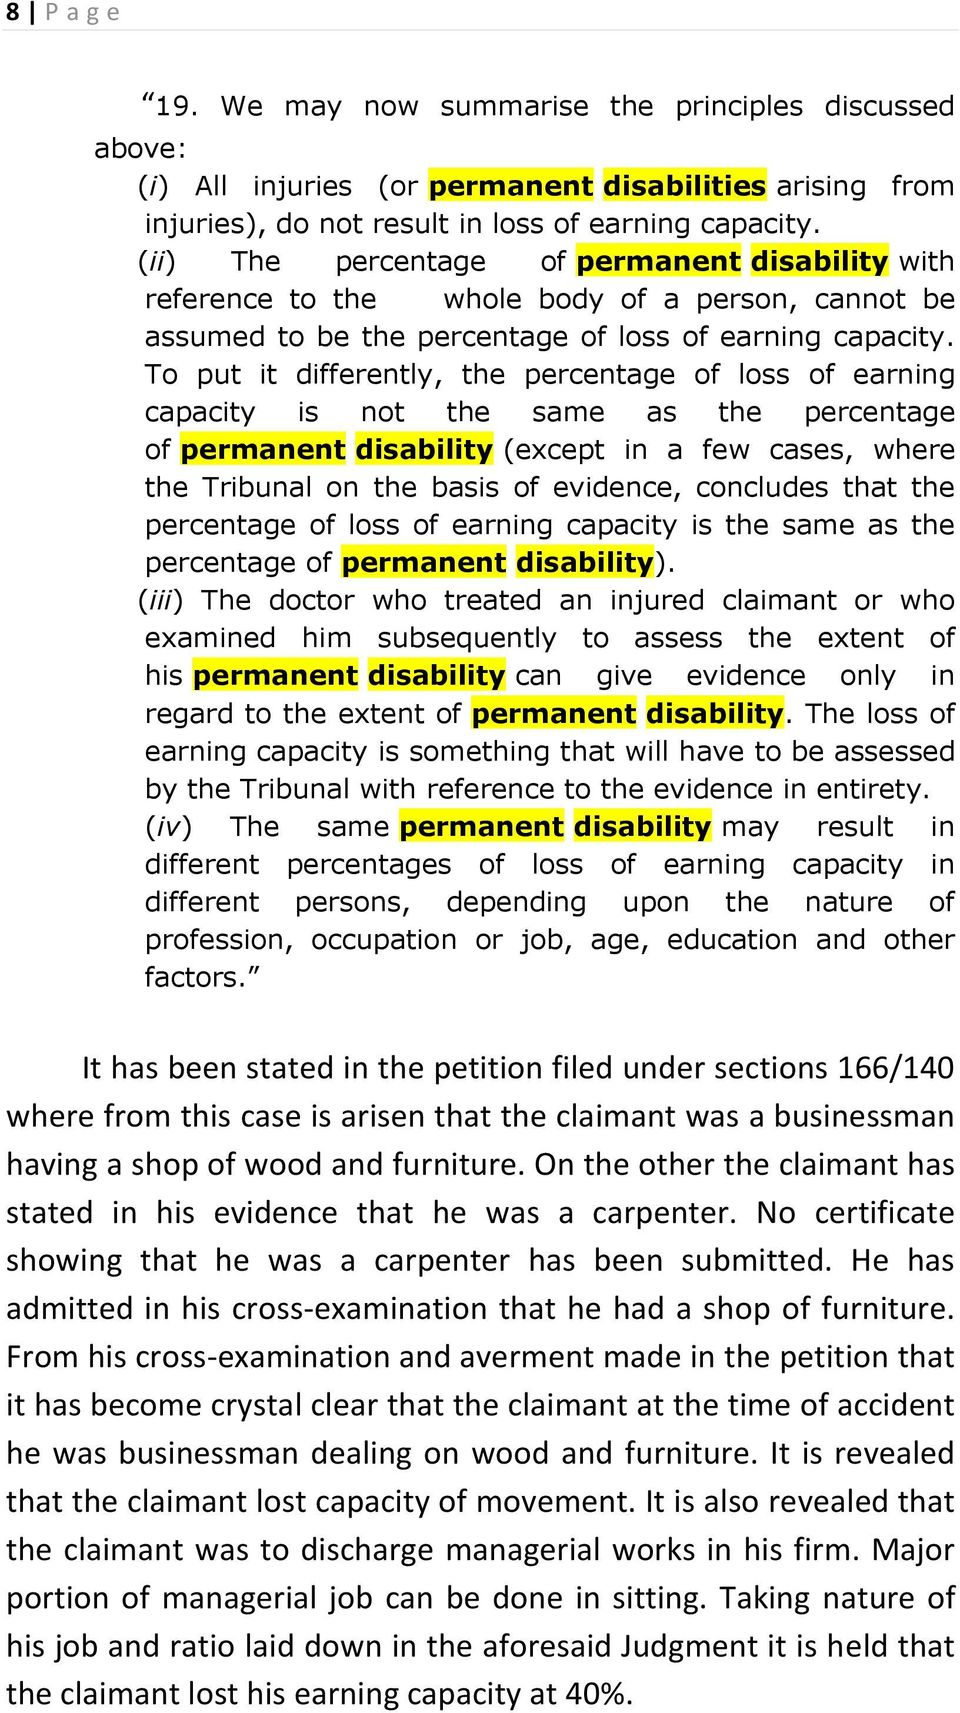 To put it differently, the percentage of loss of earning capacity is not the same as the percentage of permanent disability (except in a few cases, where the Tribunal on the basis of evidence,